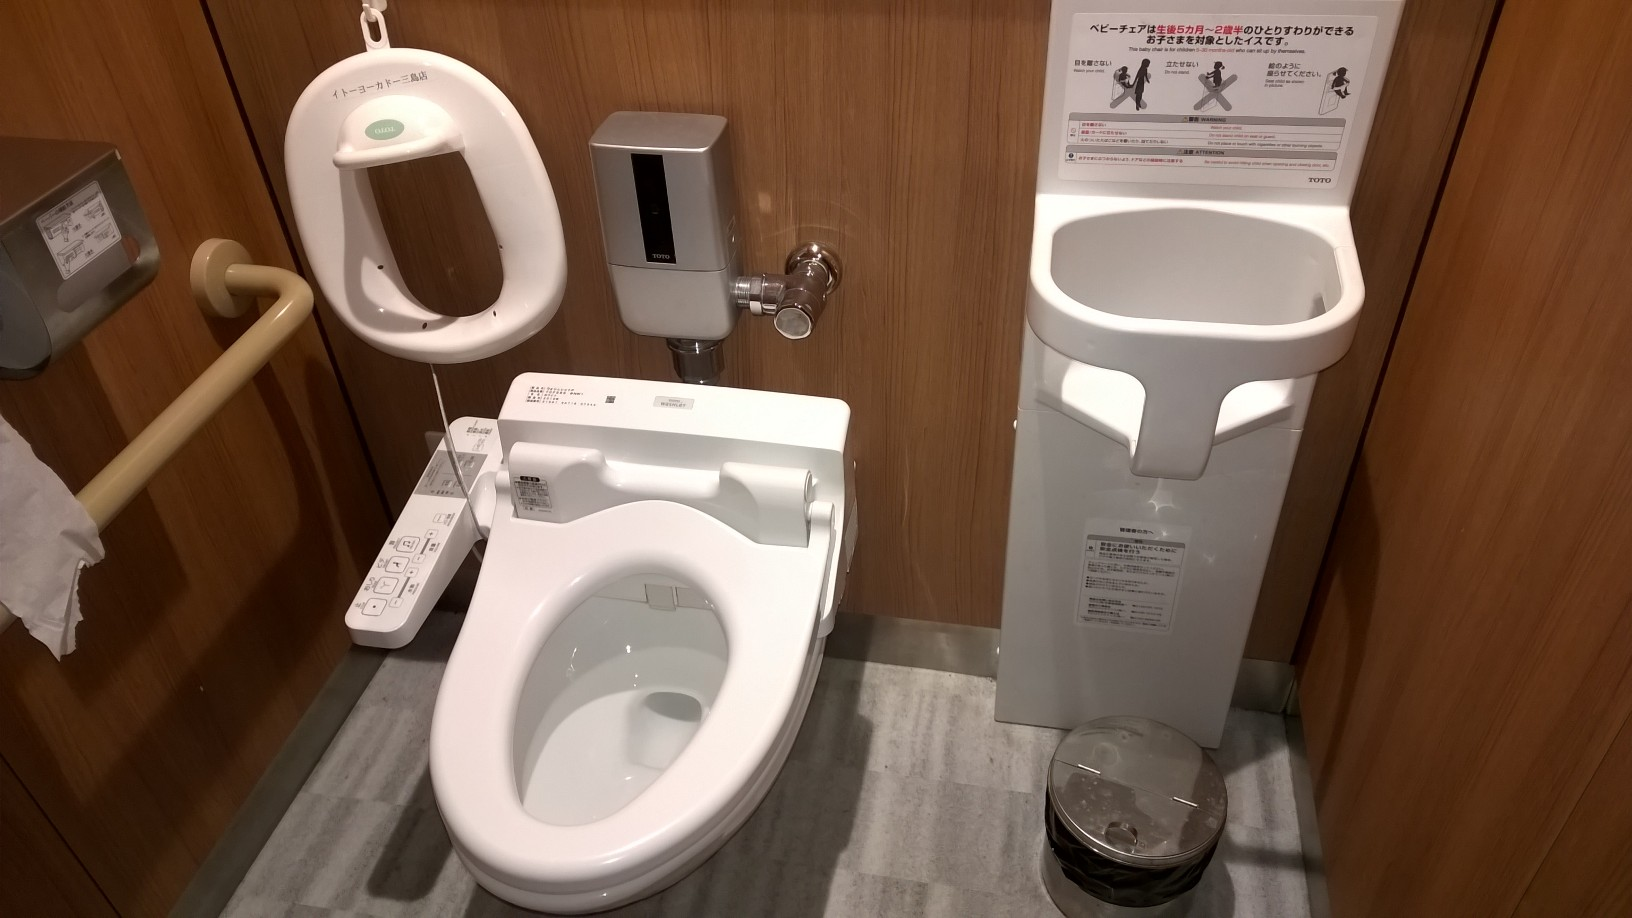 High-tech toilets, the Japanese brought this to the next level...